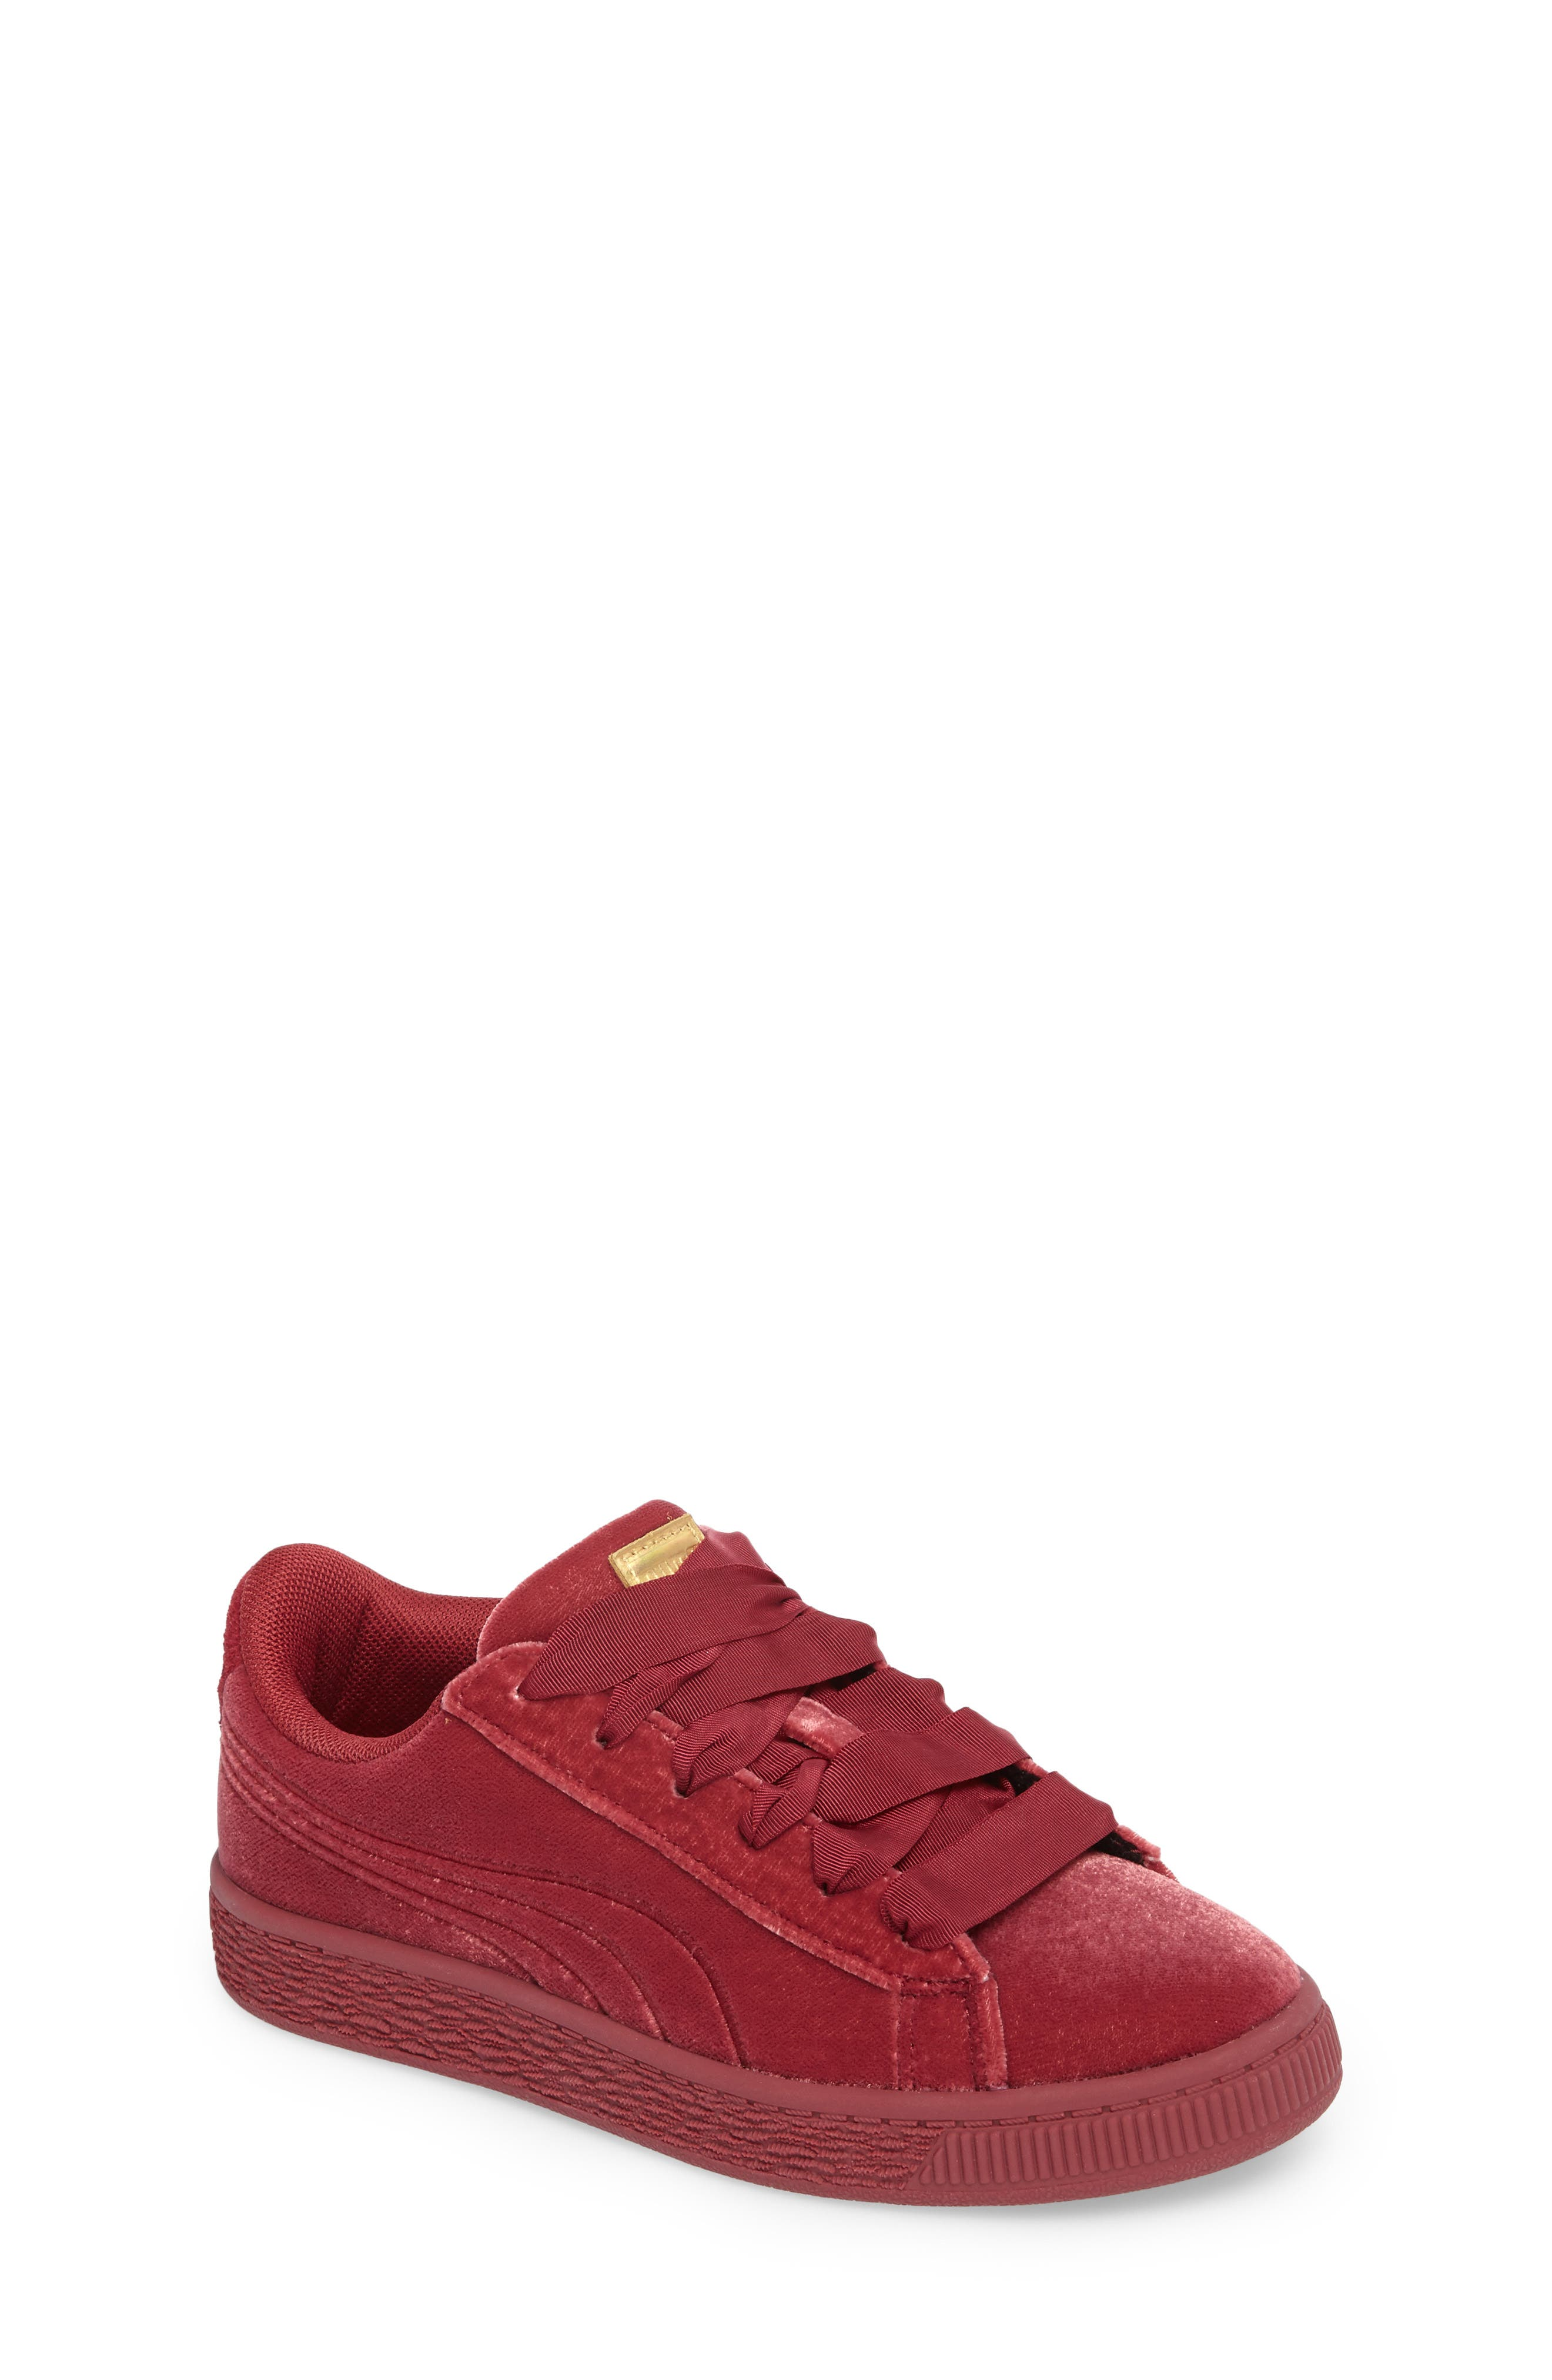 PUMA Basket Classic Velour Sneaker (Baby, Walker, Toddler, Little Kid & Big Kid)